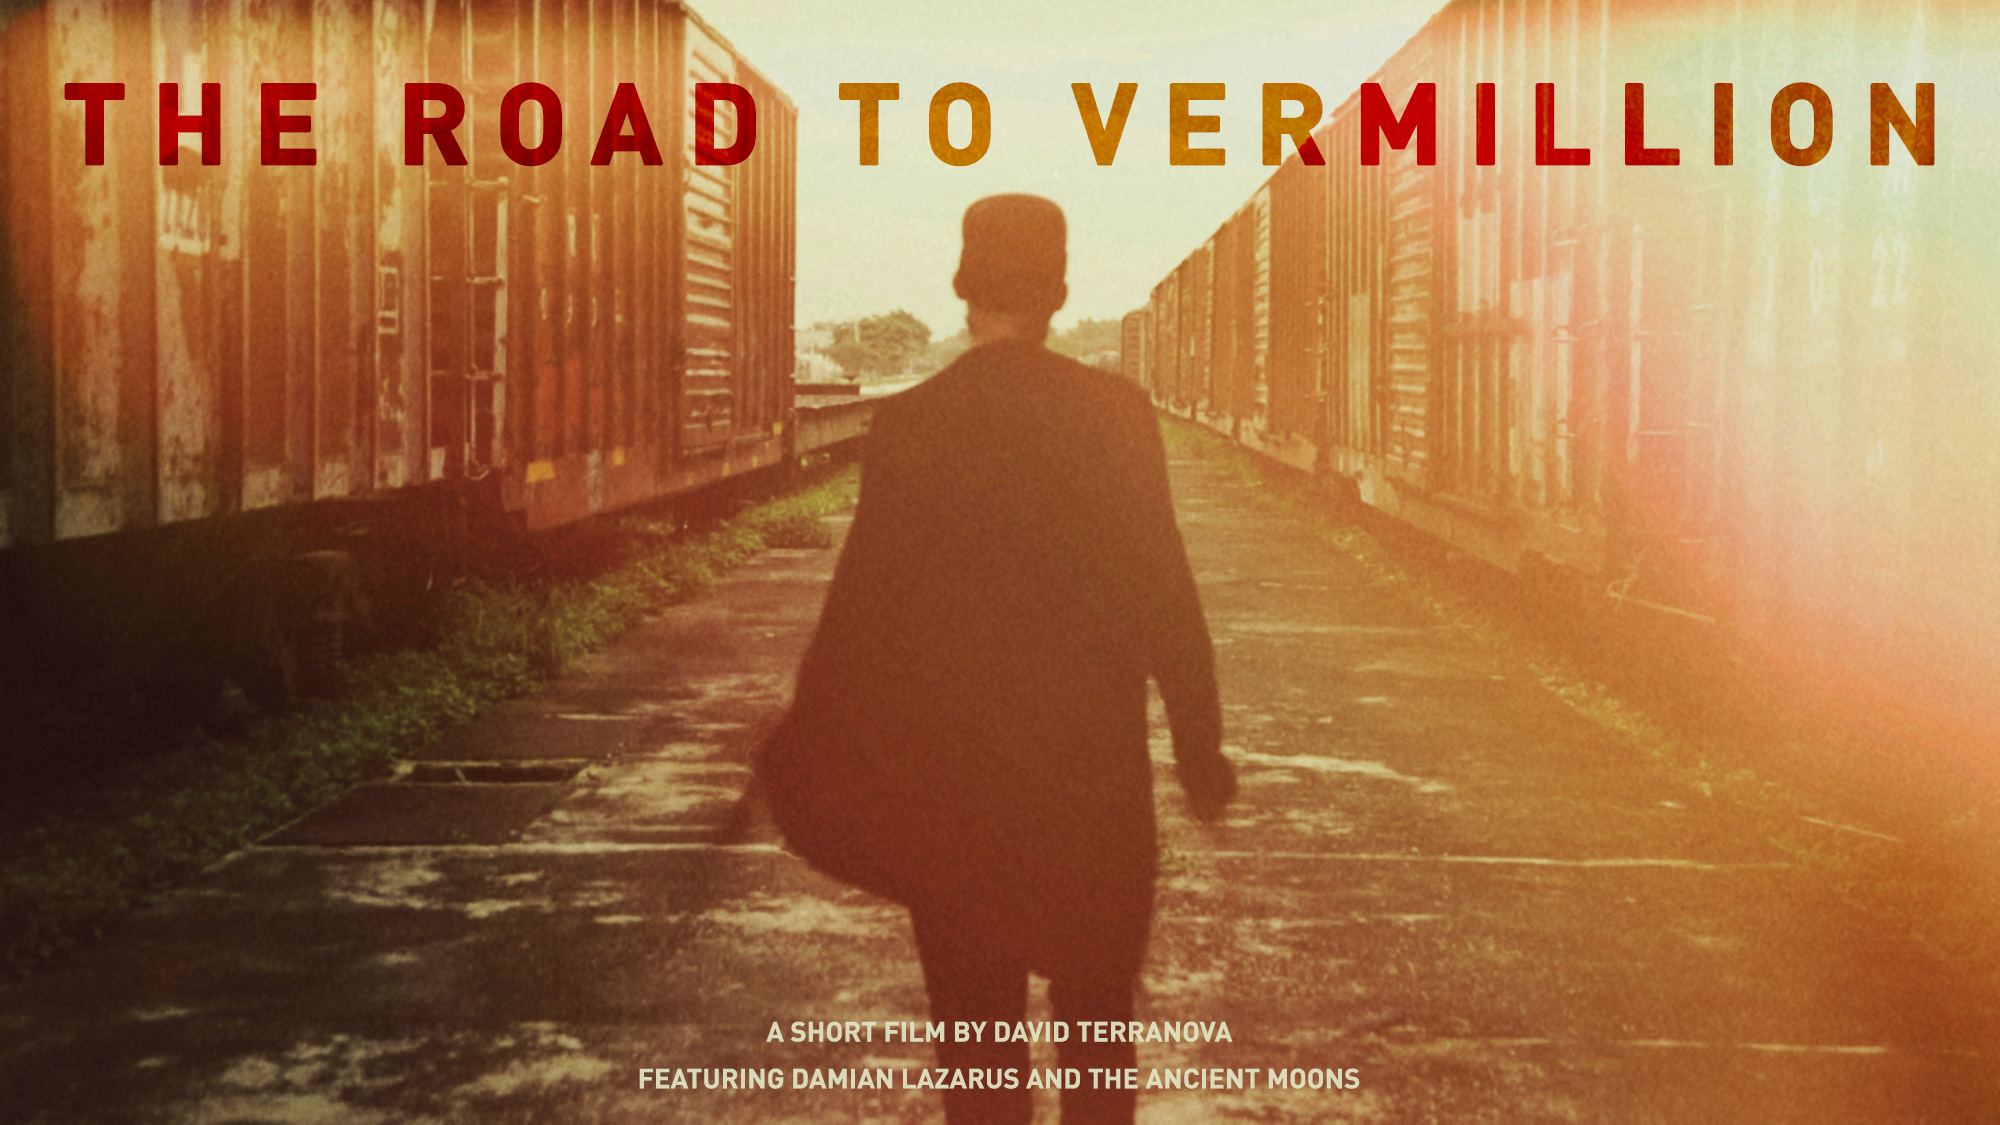 The Road To Vermillion